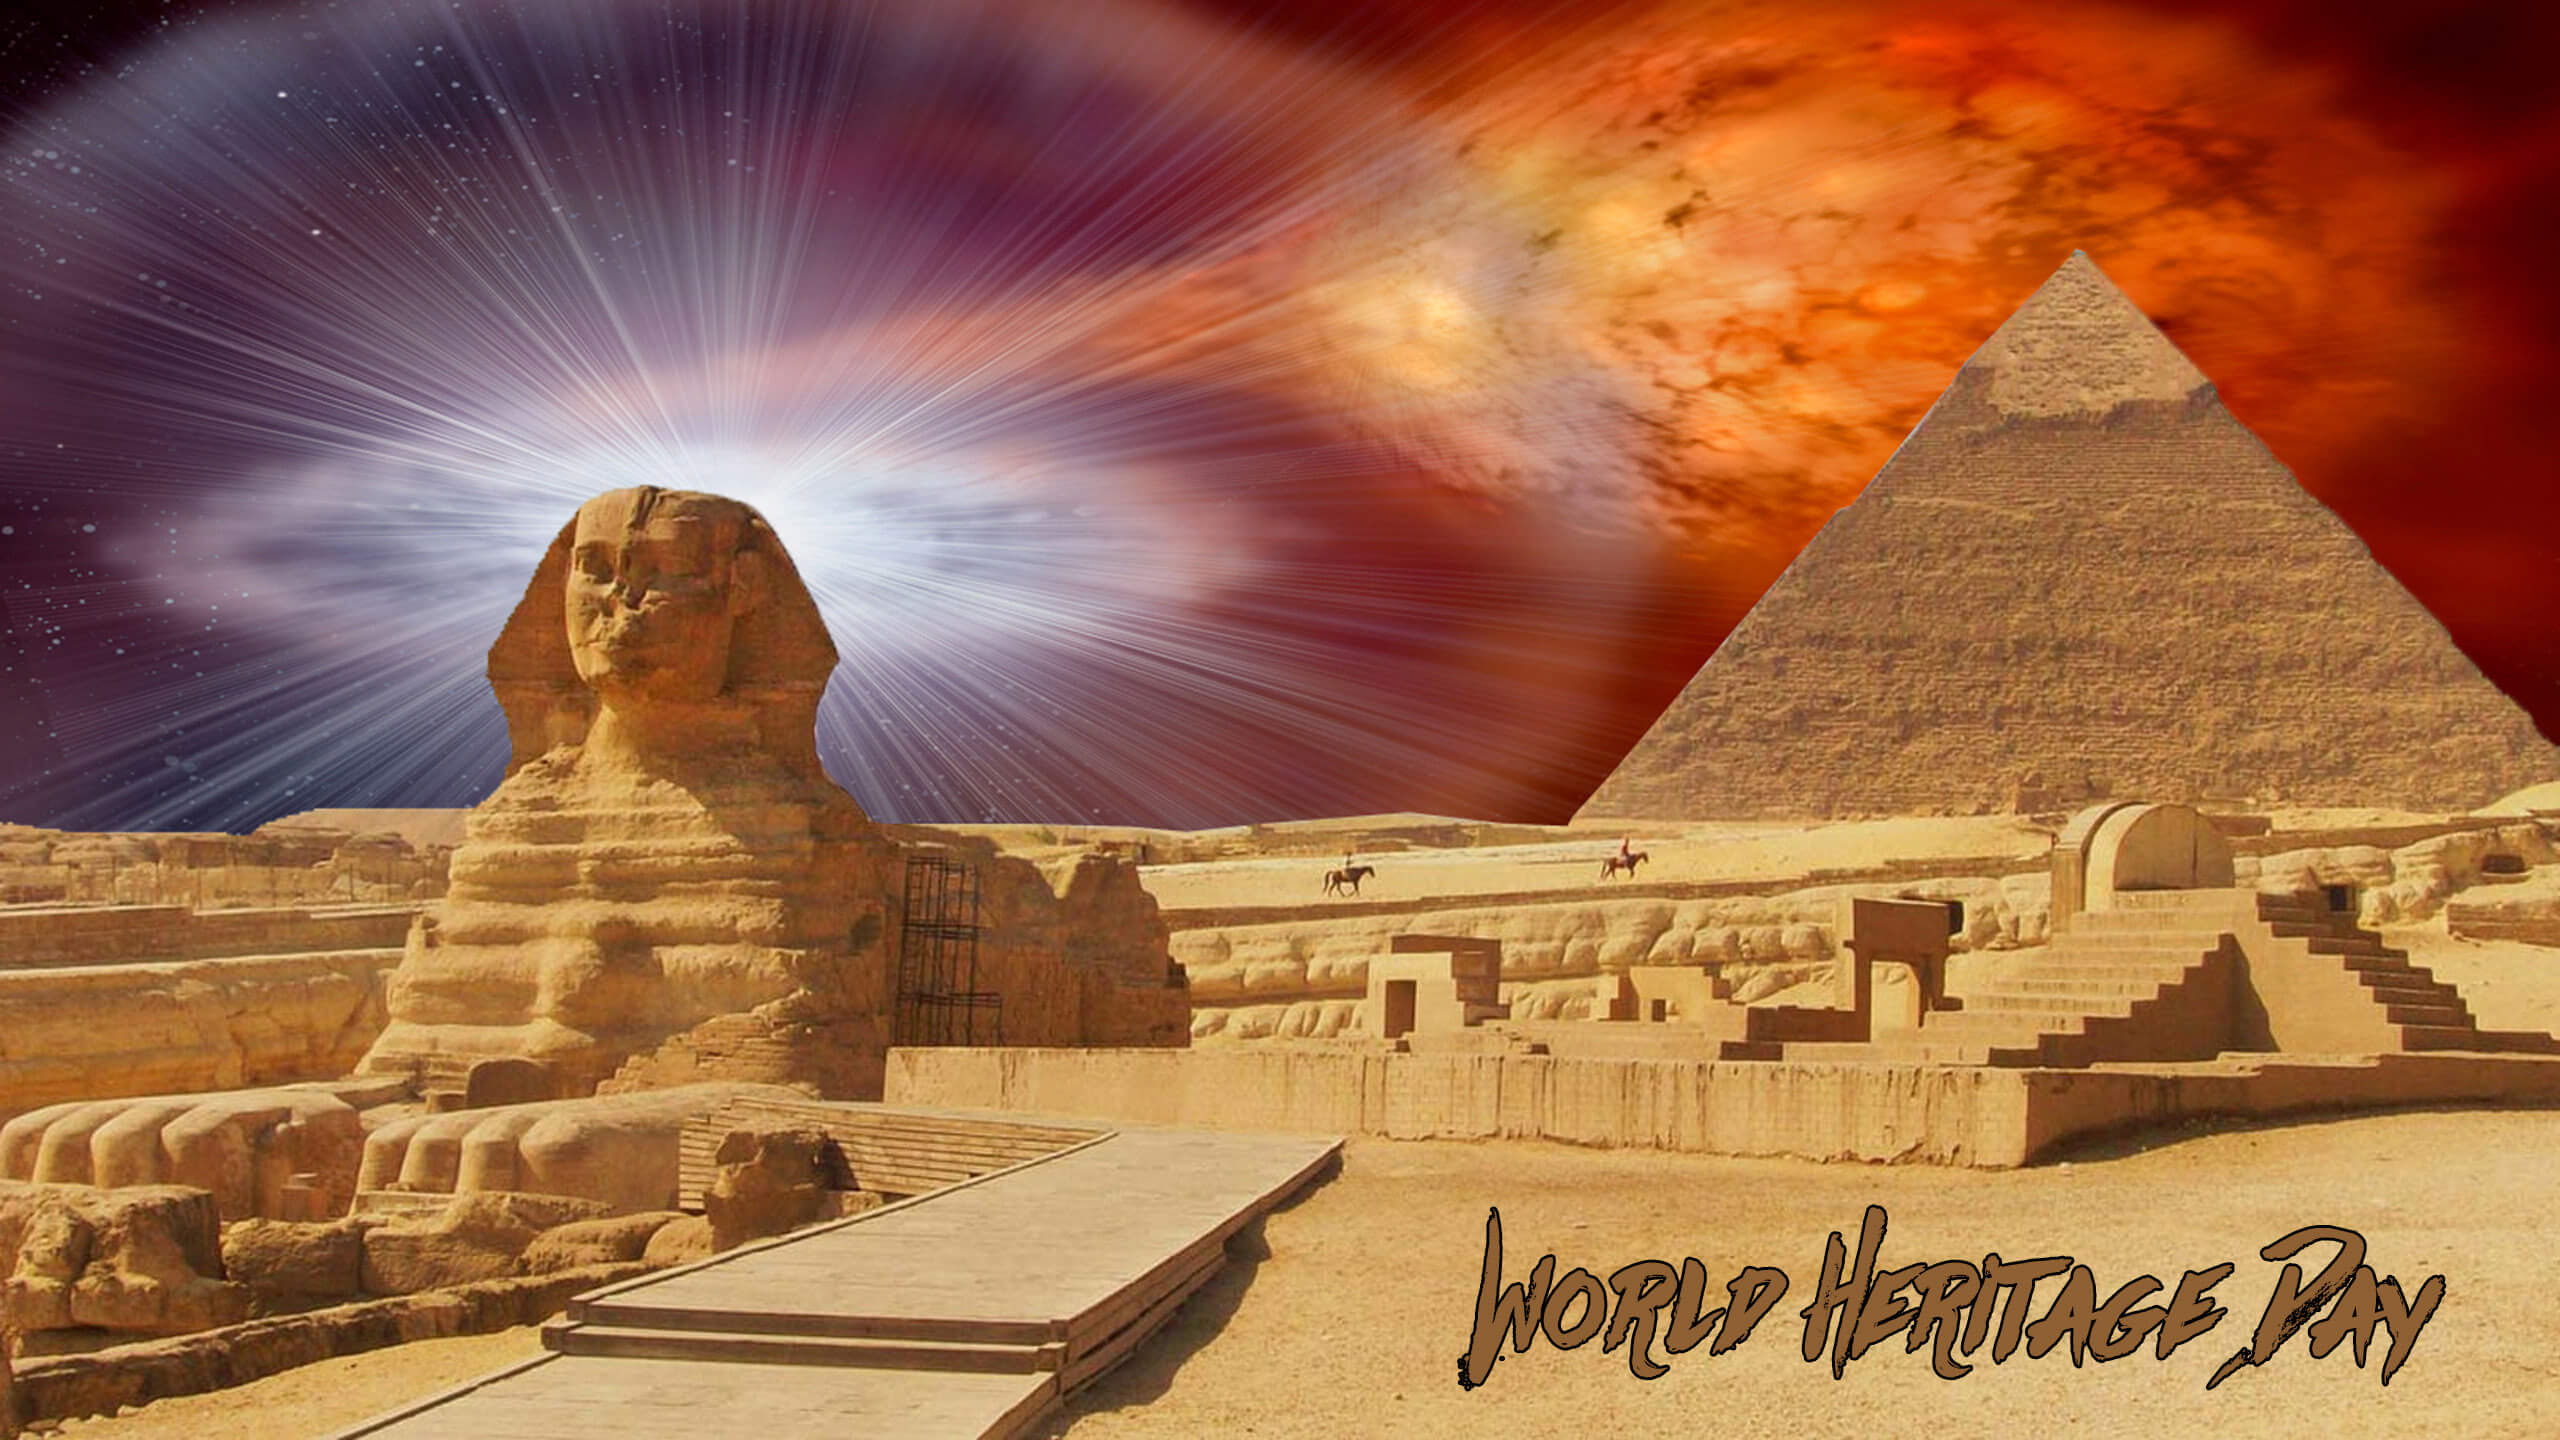 world heritage day egypt pyramid sphinx laptop hd wallpaper